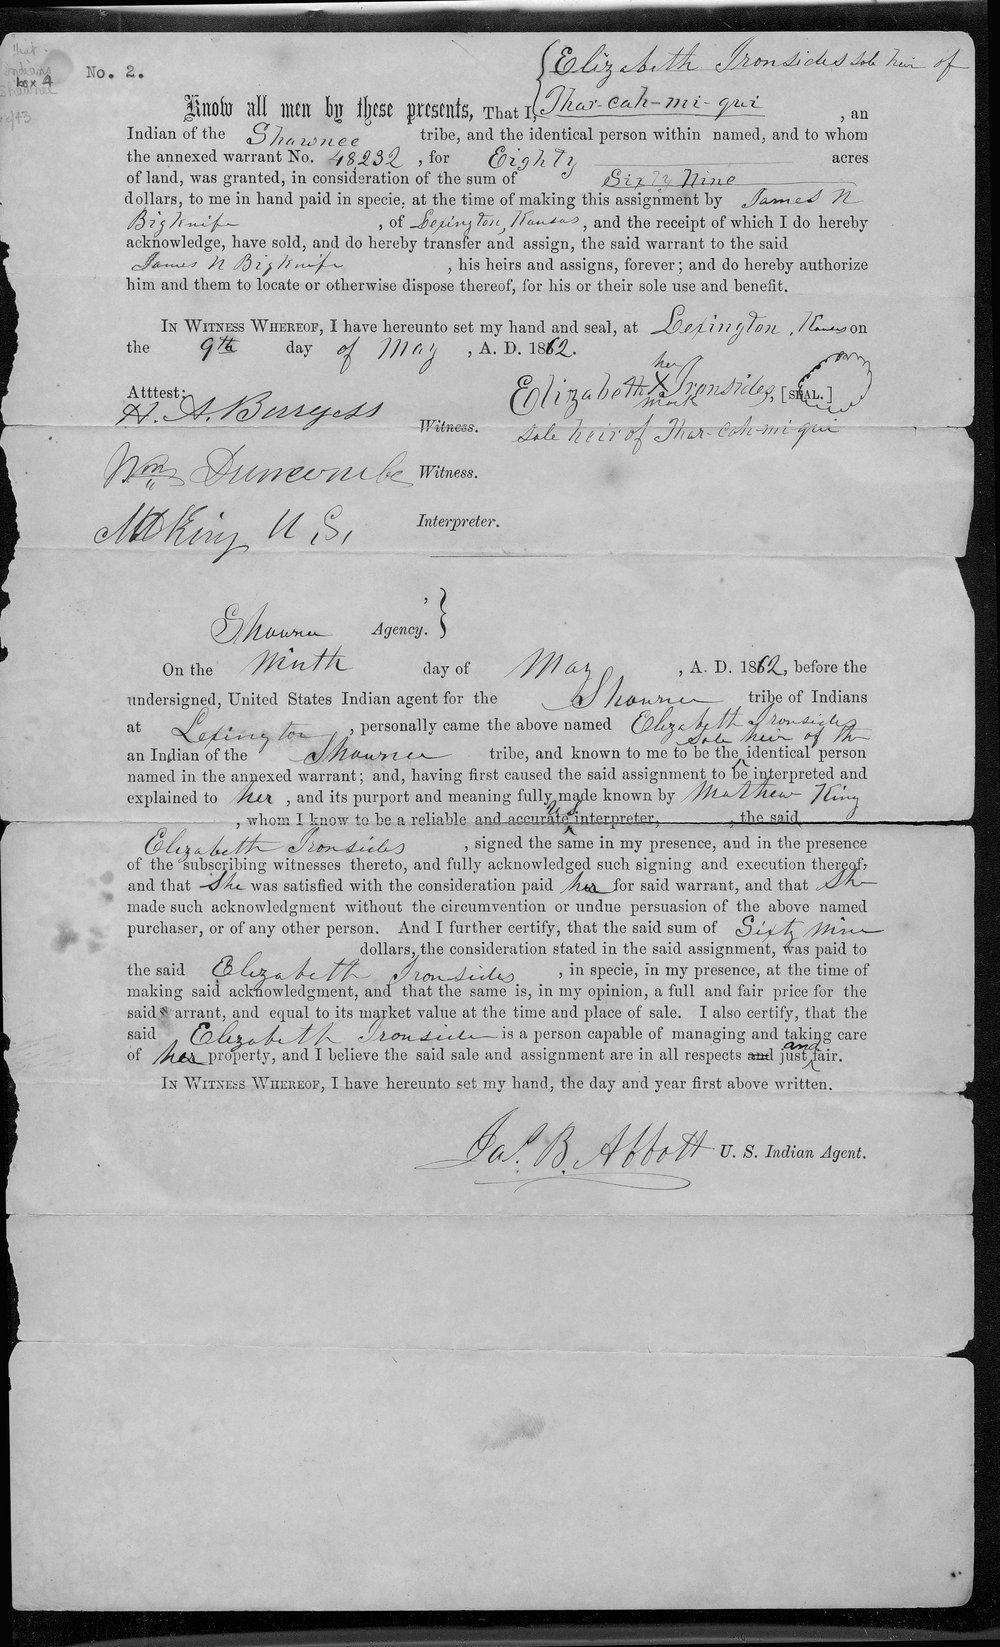 Land sale document, Elizabeth Ironsides to James N. Big Knife - 1